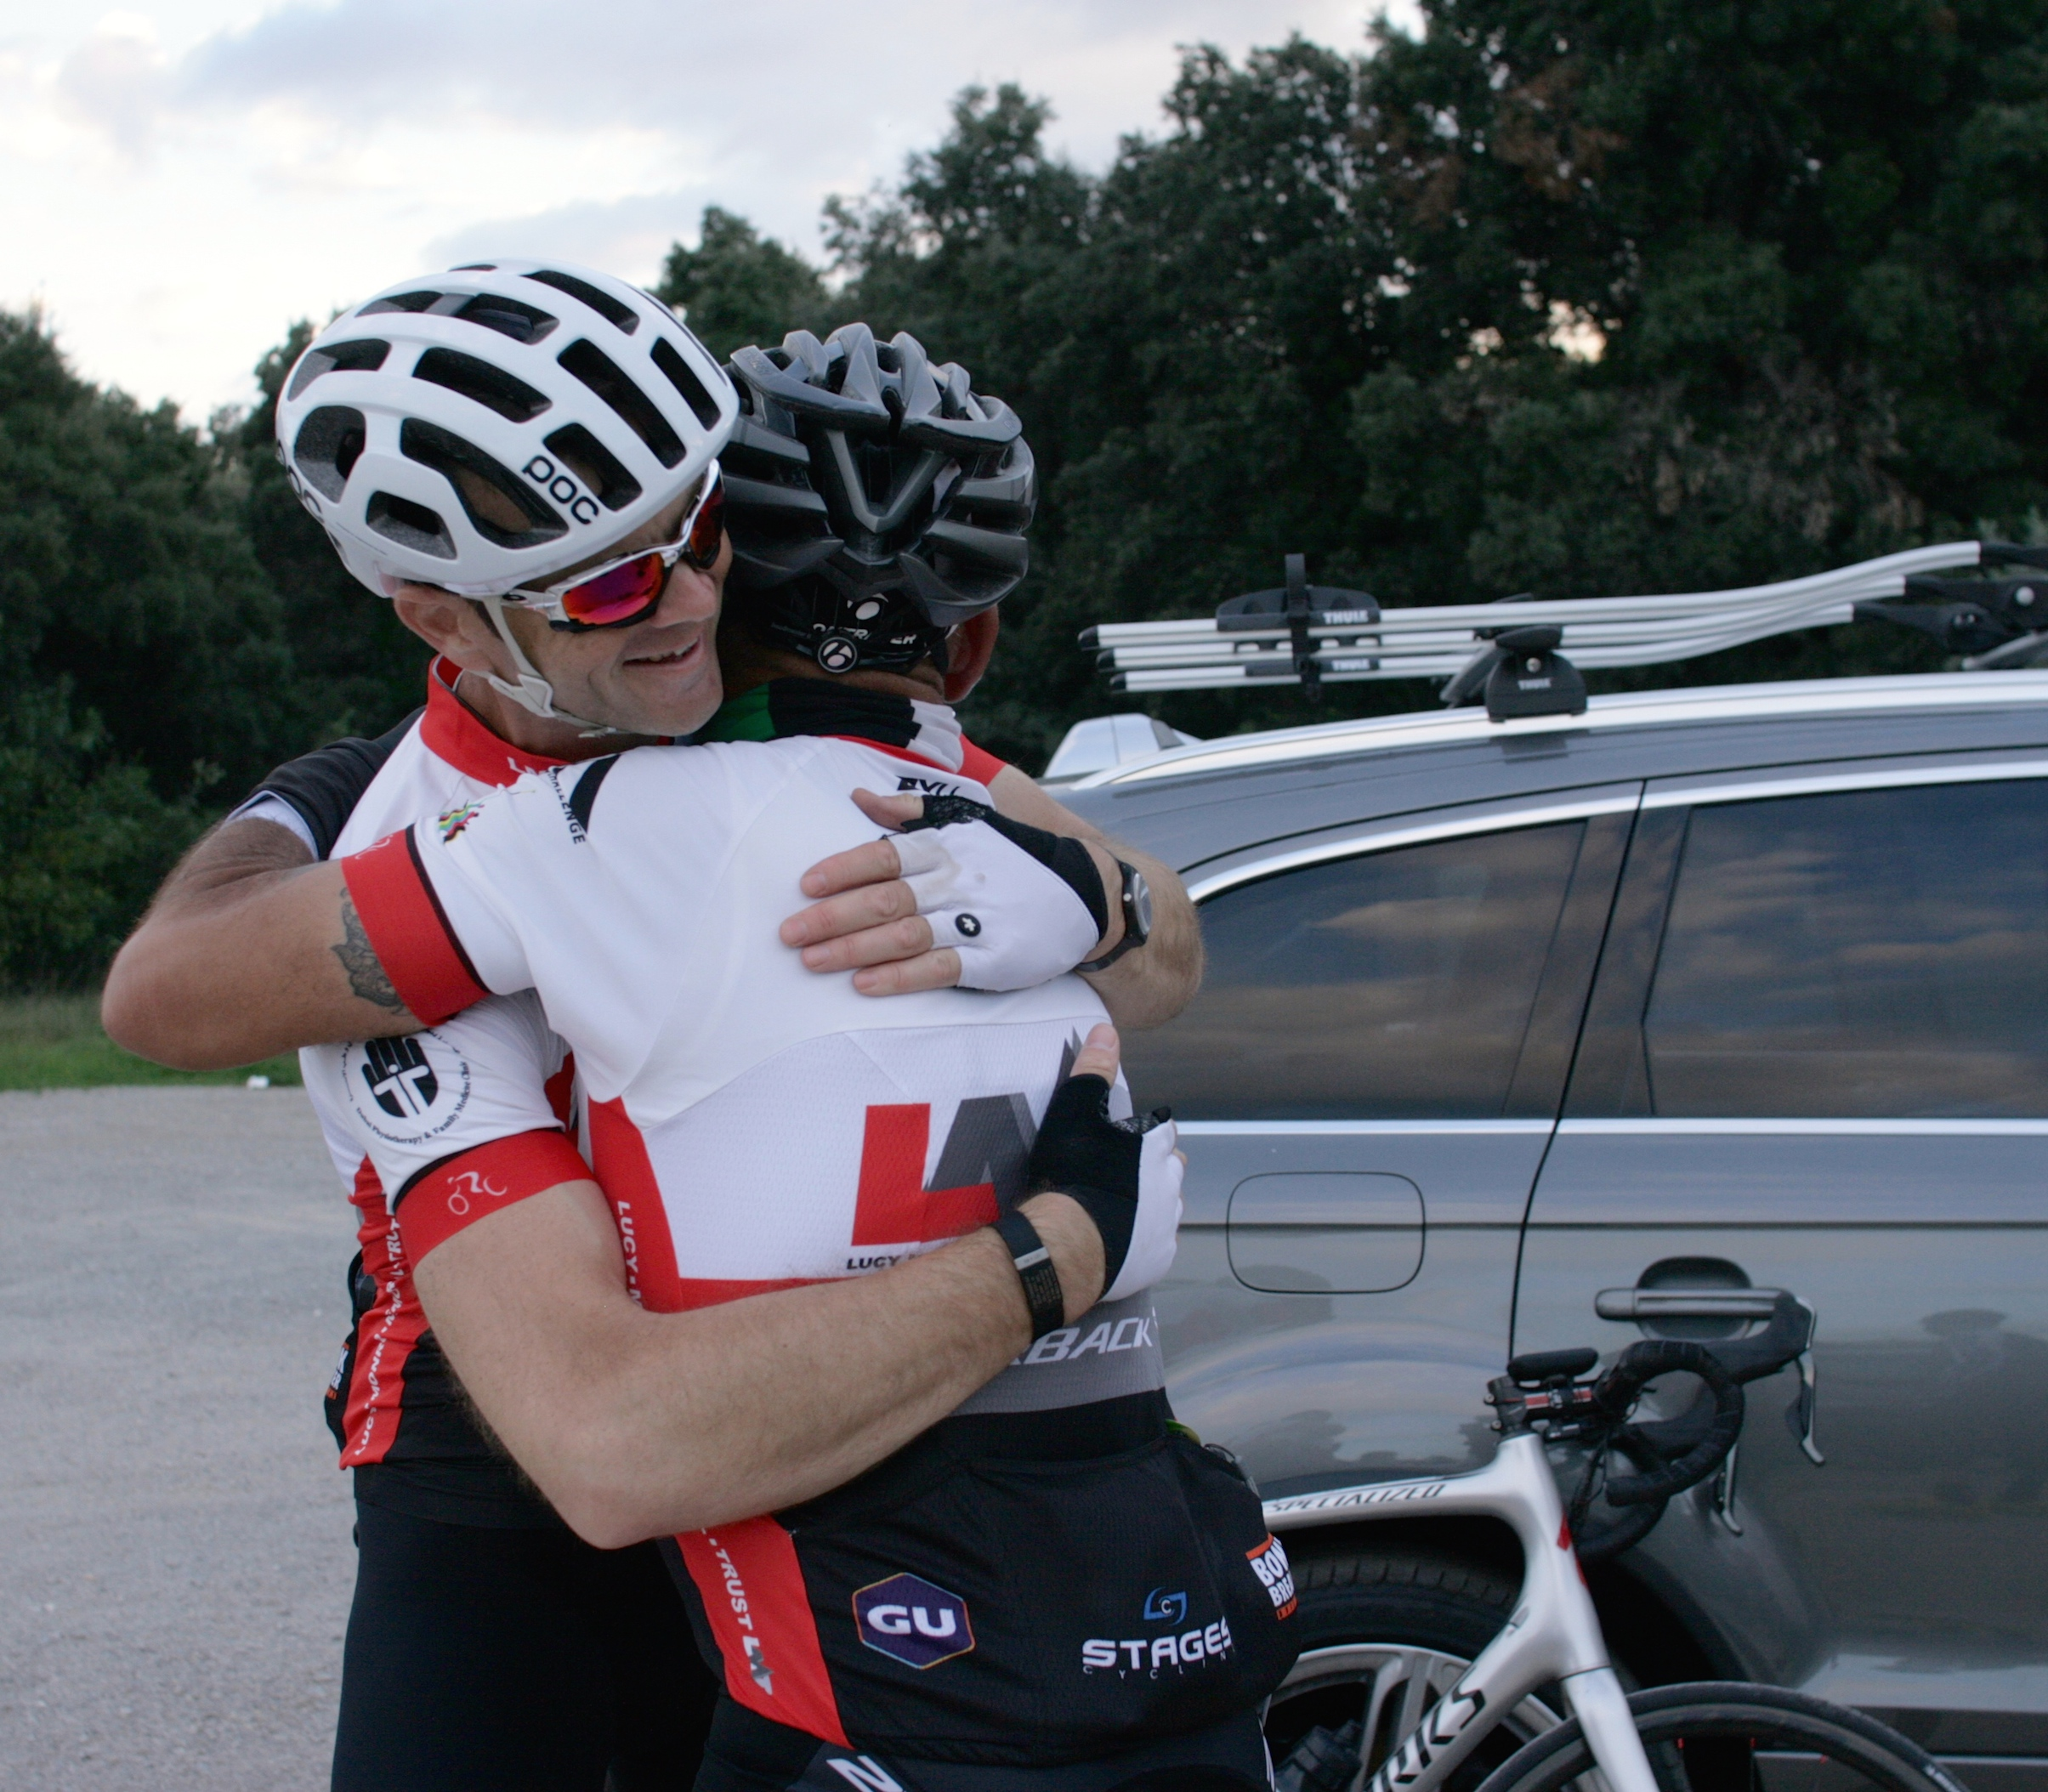 Allan & Guy at the finish. We did a good thing here and will have lifelong memories from the Cevennes. Photo: Paul Davy